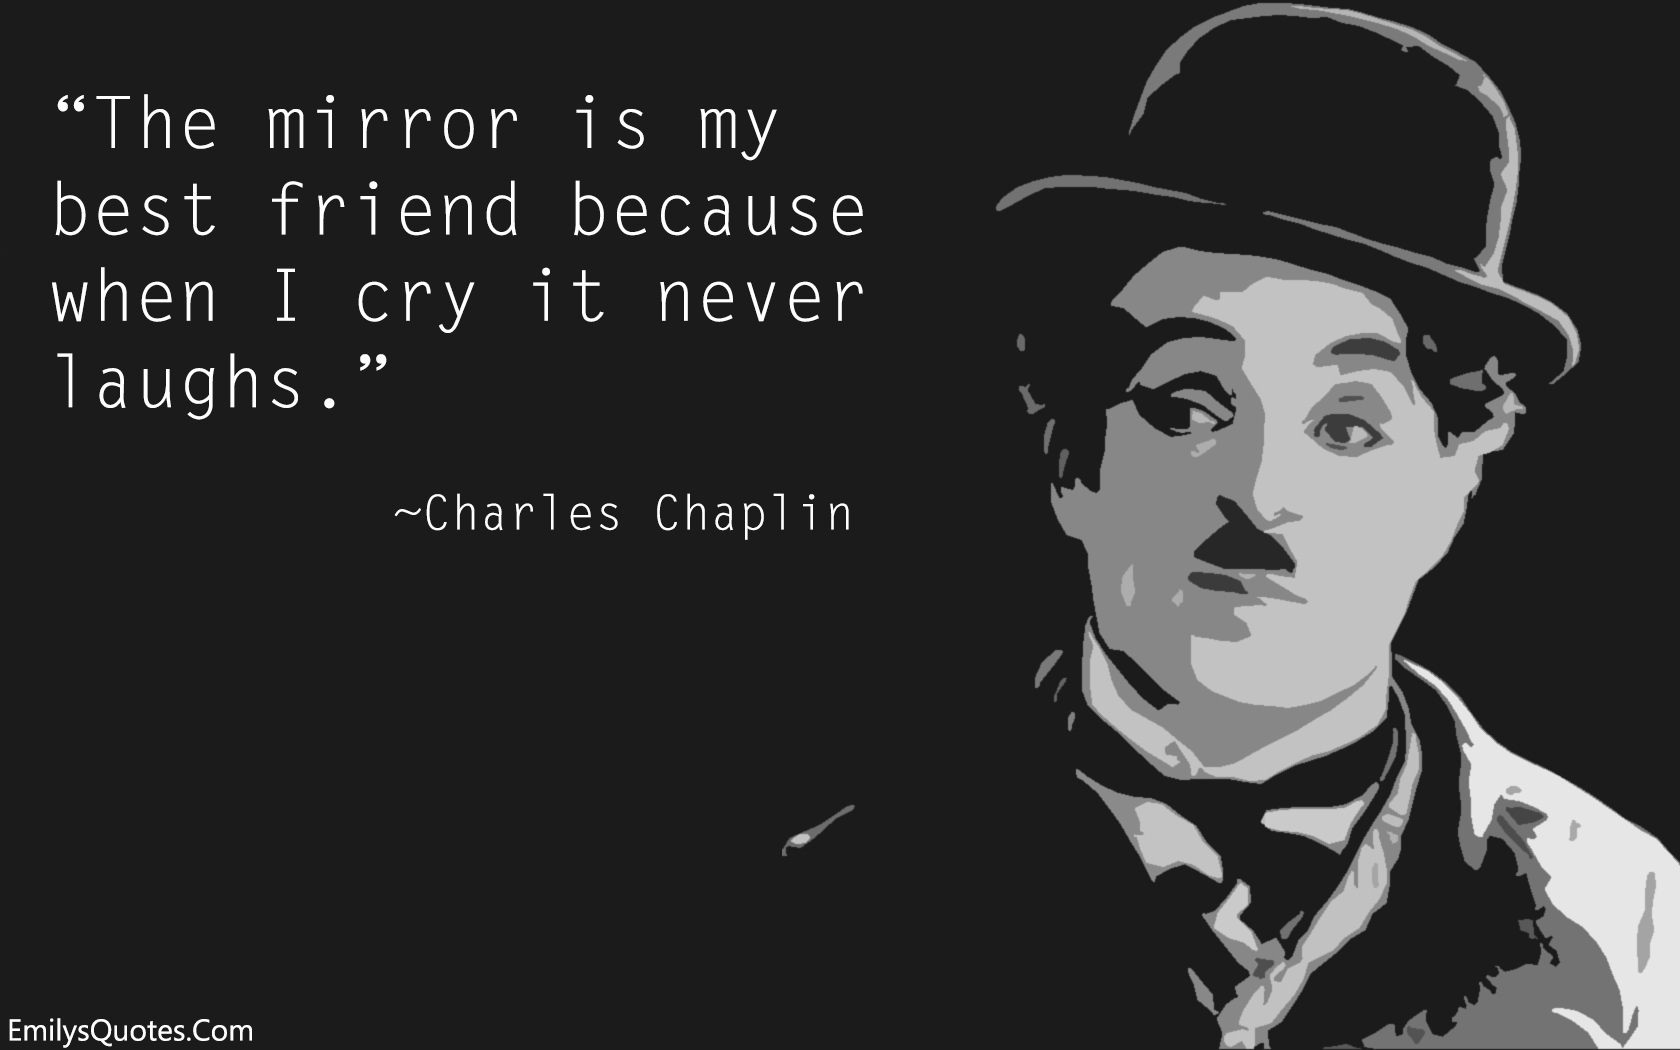 Sad Quotes About Friendship That Make You Cry The Mirror Is My Best Friend Because When I Cry It Never Laughs